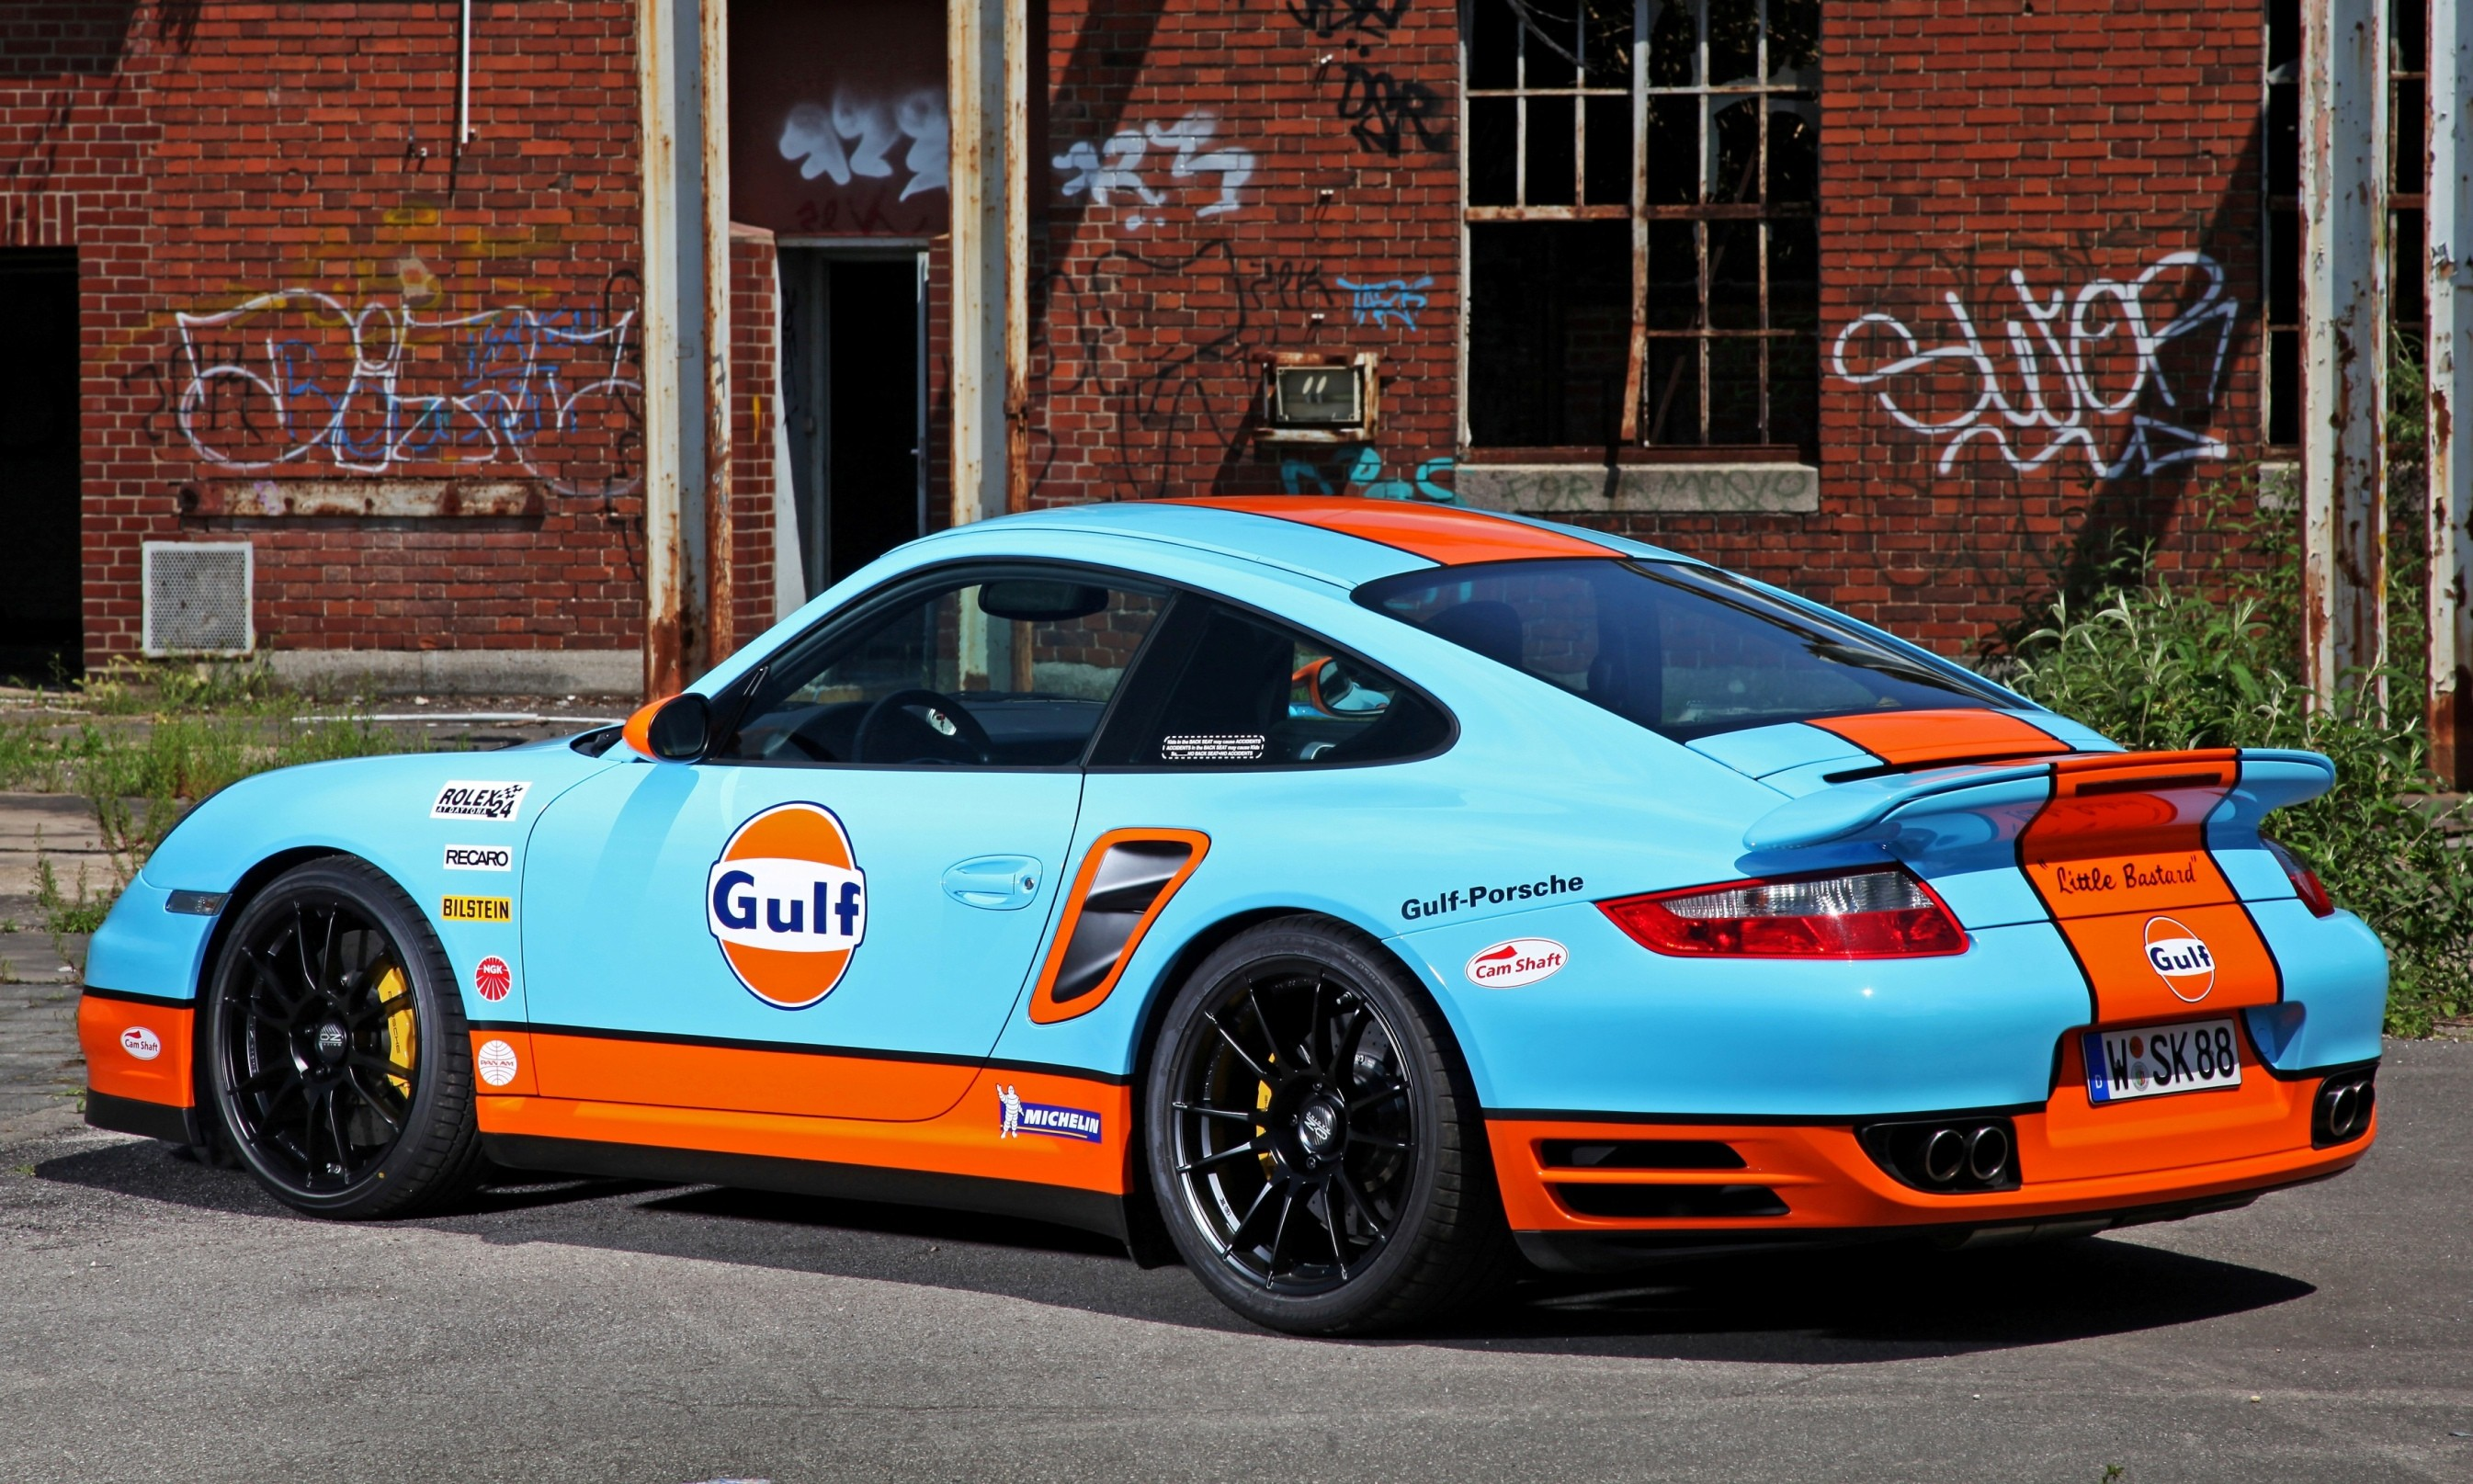 Gulf Racing Livery By Cam Shaft For The Porsche 911 Turbo